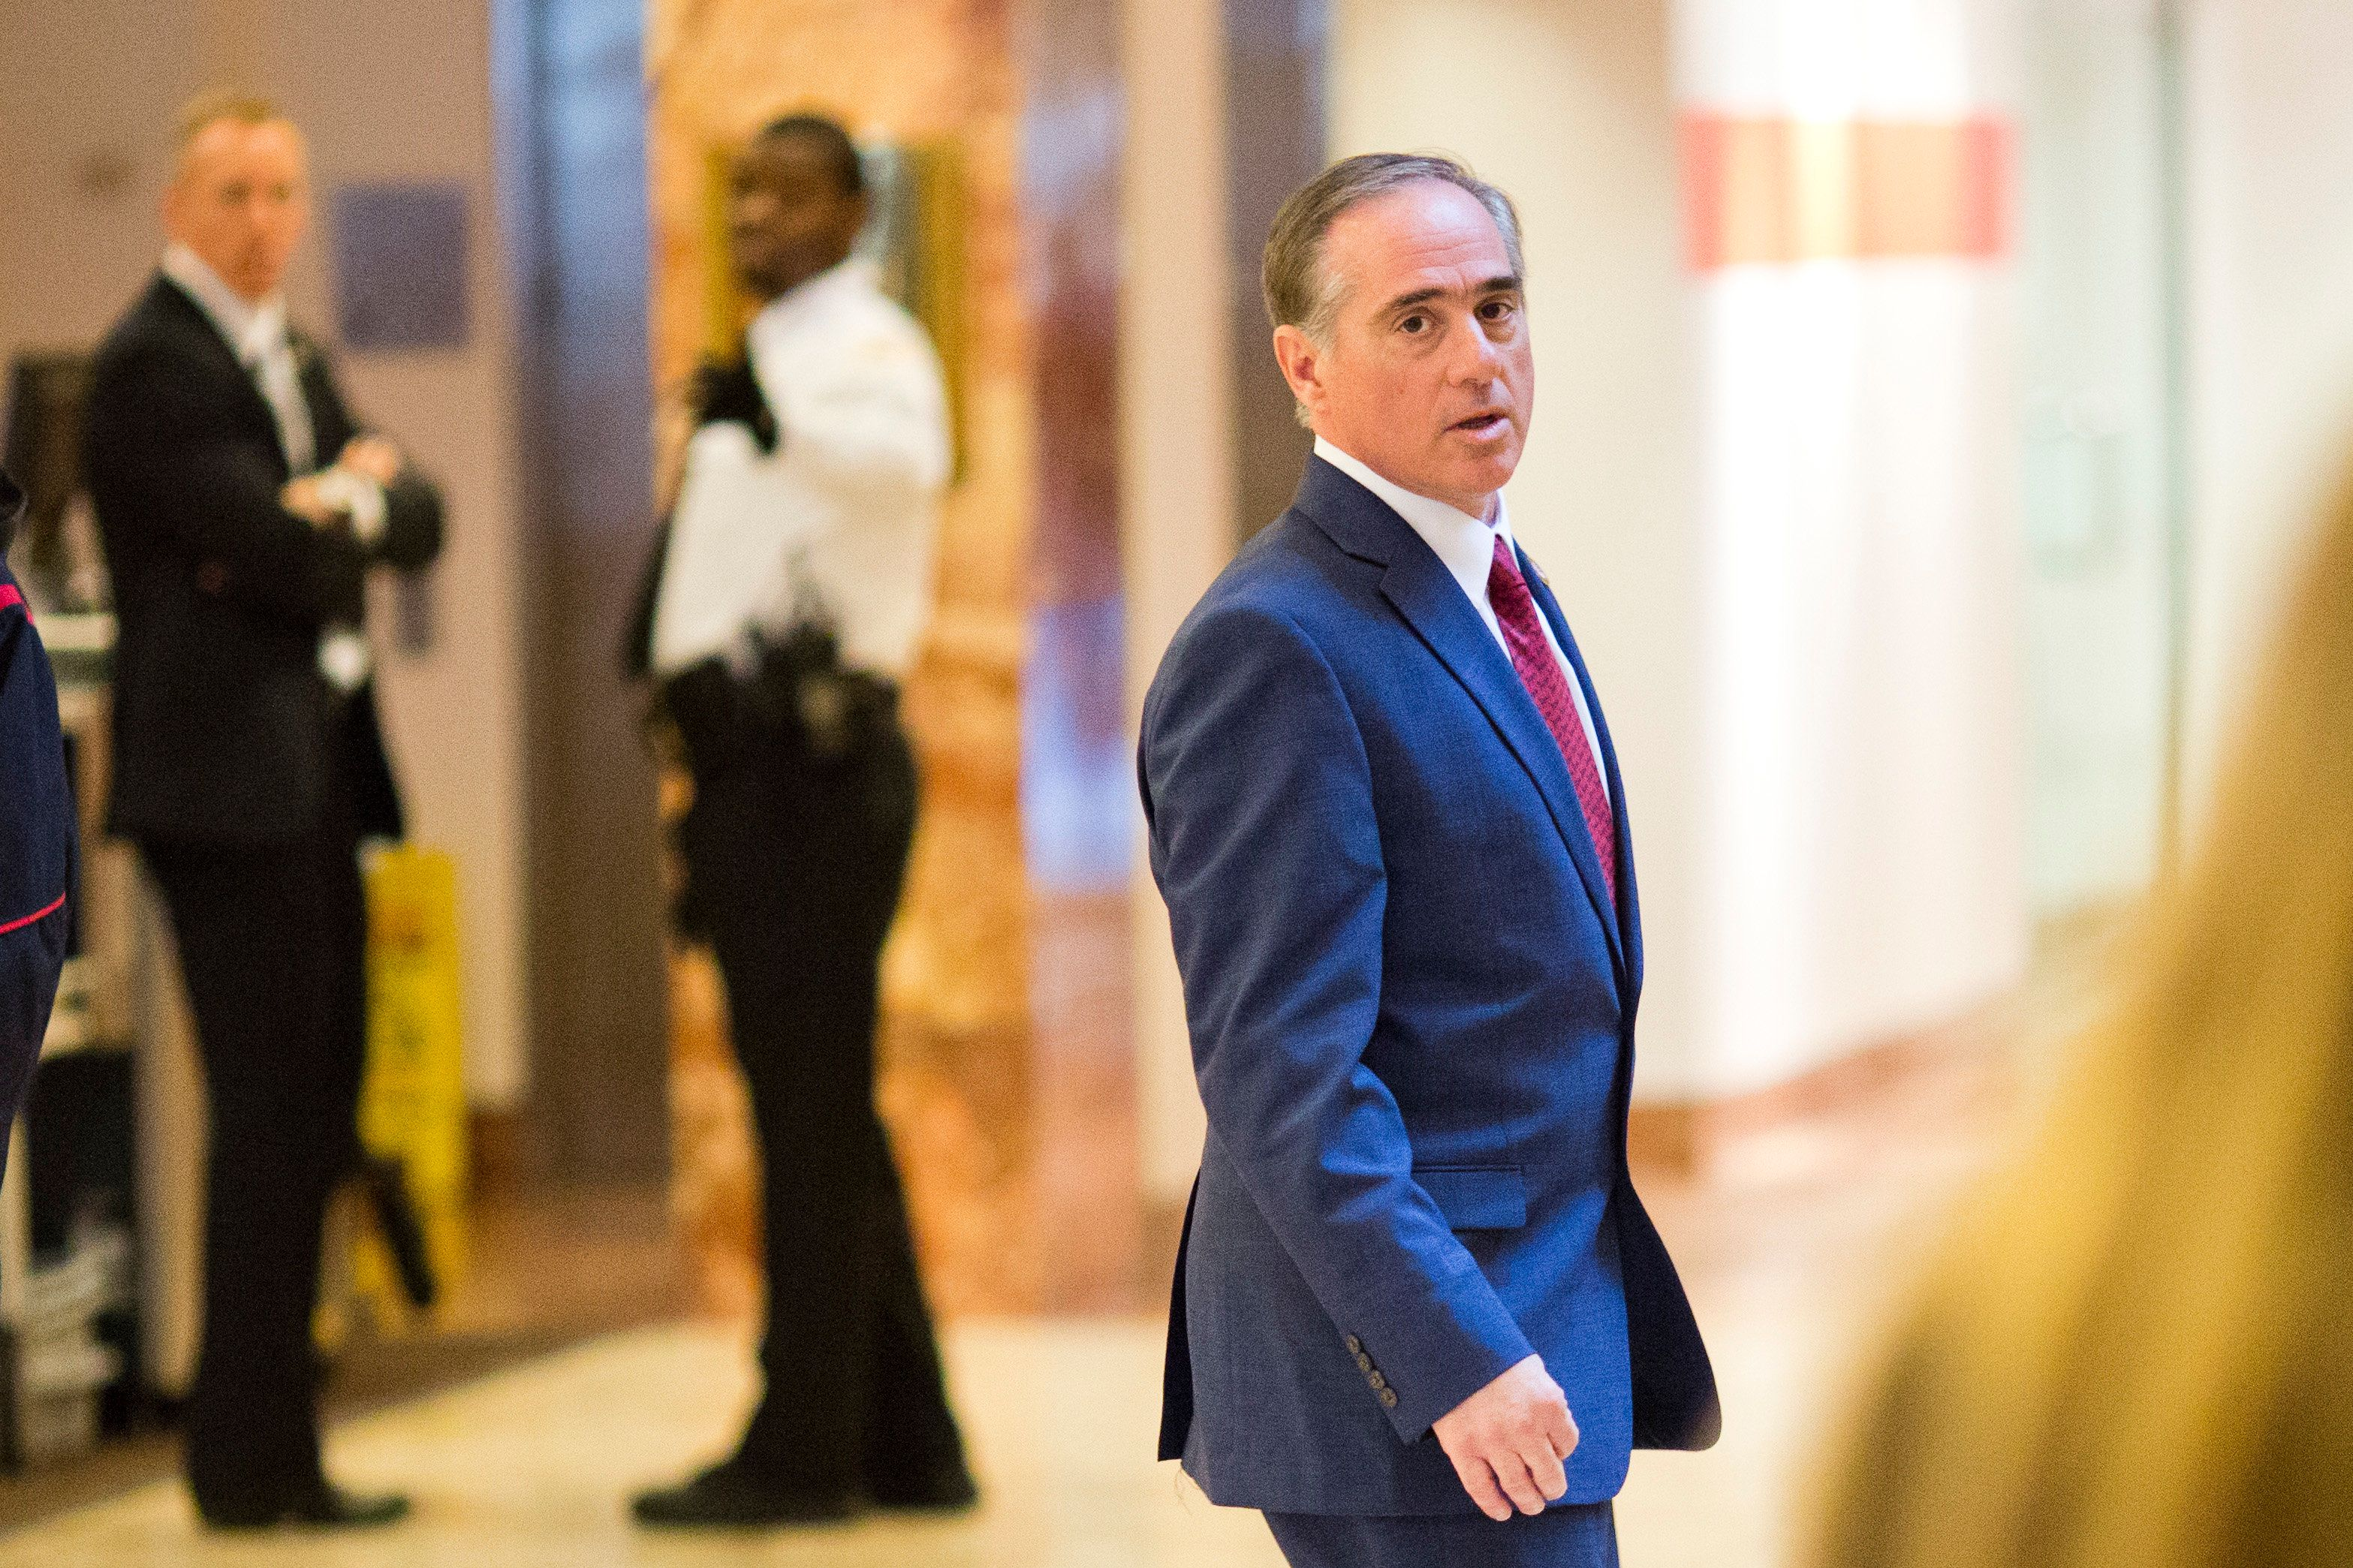 David Shulkin, Under Secretary of Health for the US Department of Veterans Affairs, leaves Trump Tower in New York City, New York on January 9, 2017. / AFP / DOMINICK REUTER        (Photo credit should read DOMINICK REUTER/AFP/Getty Images)